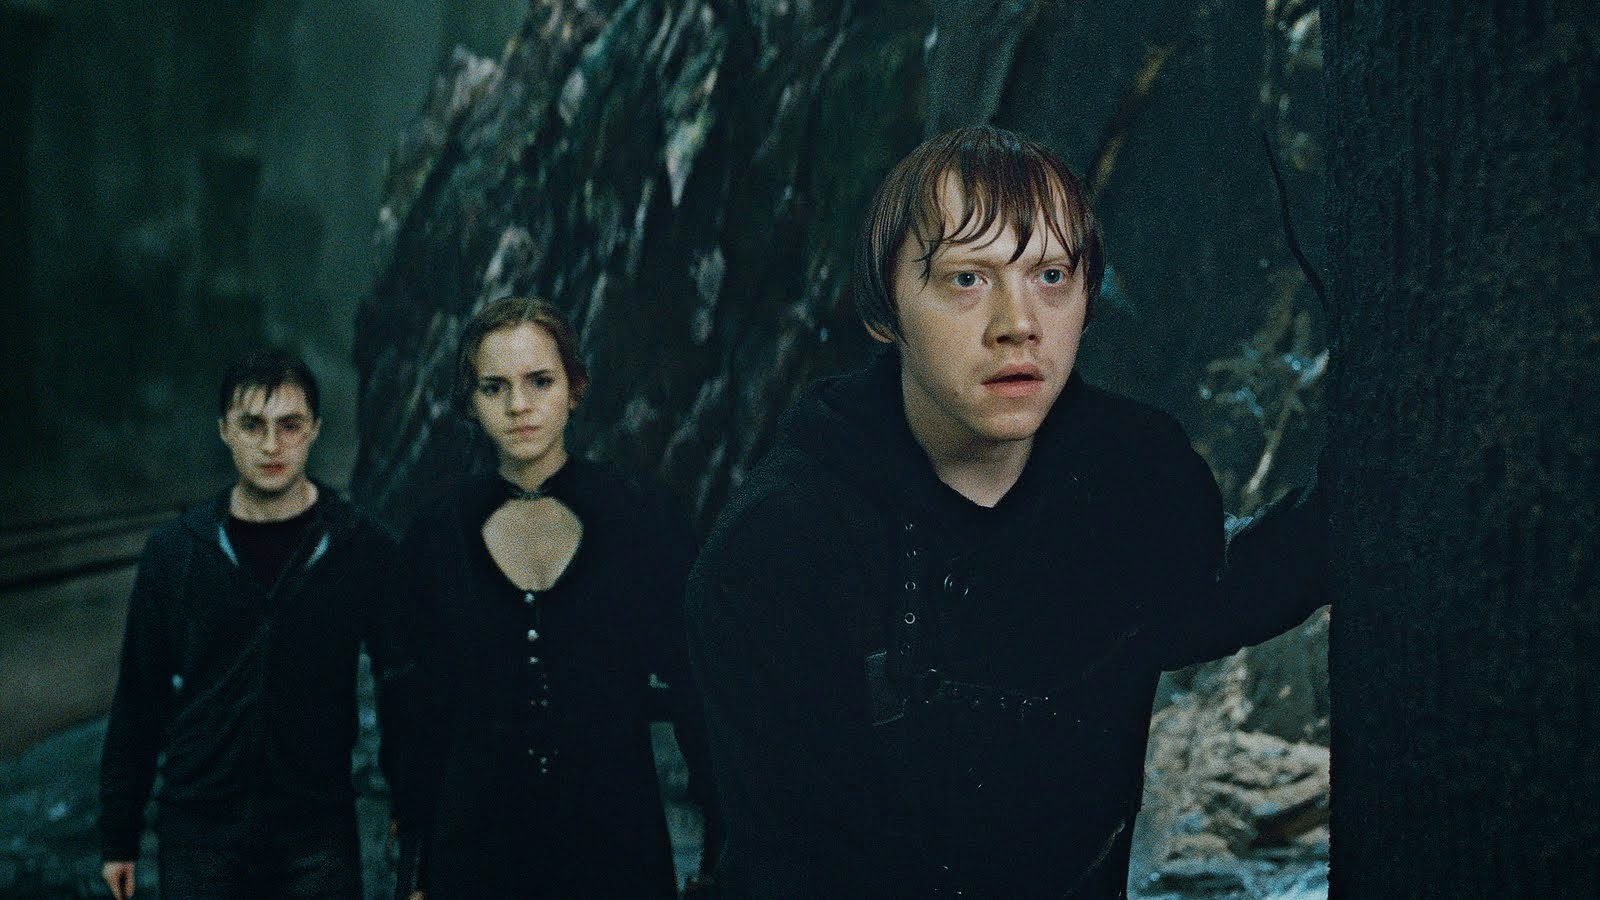 Daniel Radcliffe, Rupert Grint and Emma Watson reprise their roles Universal's theme park ride